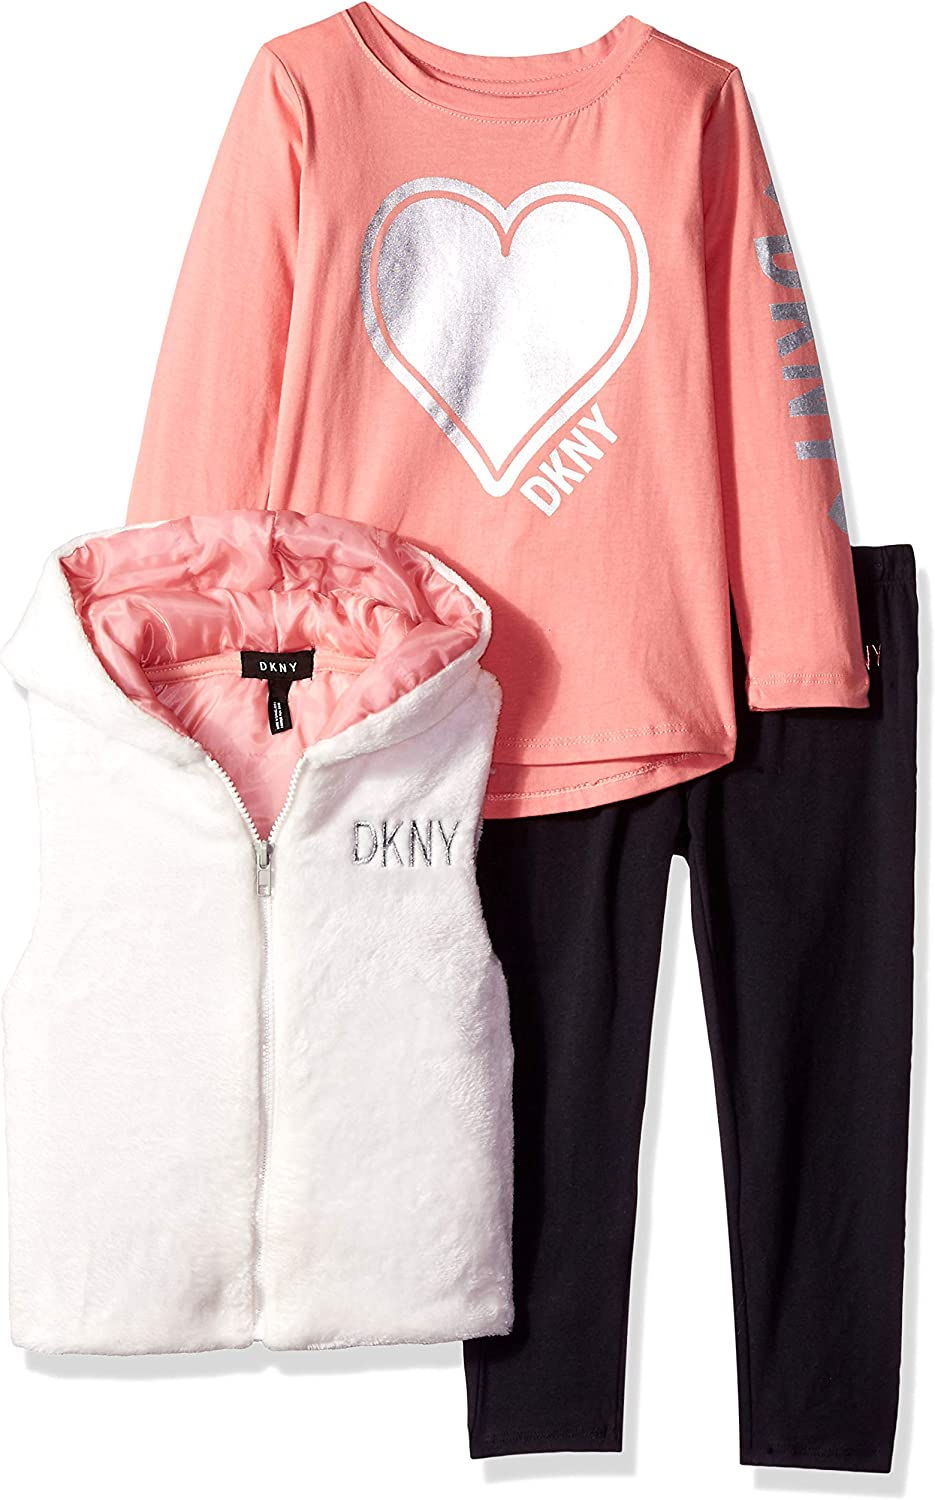 DKNY Girls 3 Piece Heart T-Shirt Hooded Vest and Pant Set